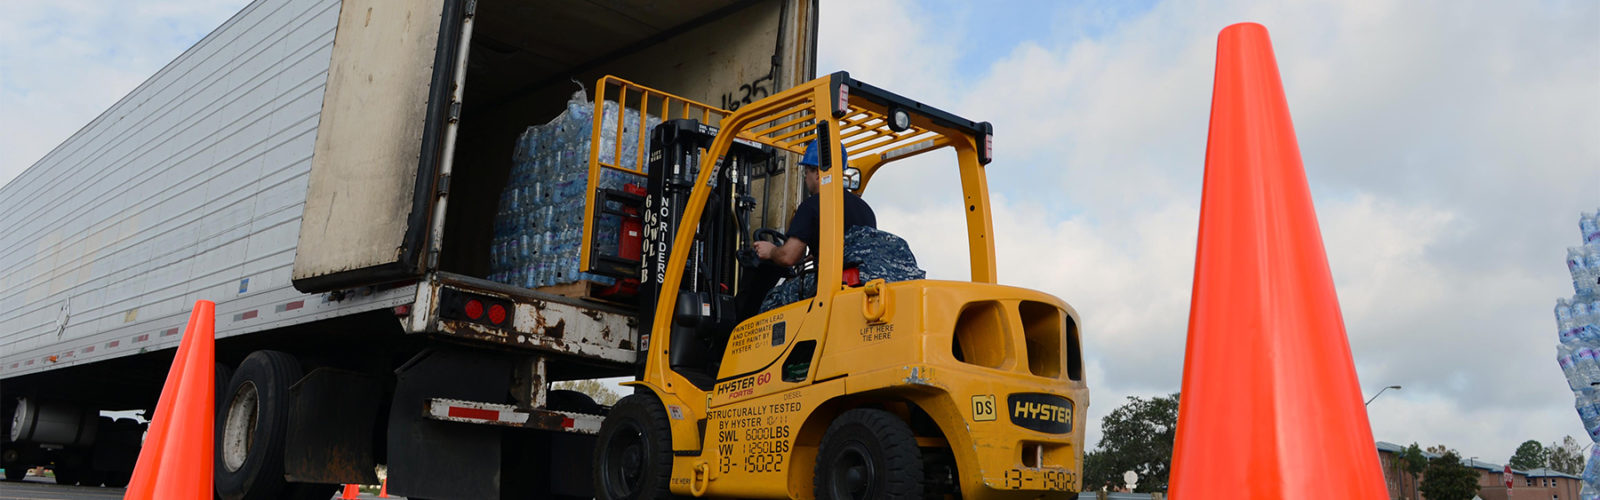 A U.S. Sailor uses a forklift to unload bottled water from a truck Sept. 1, 2012, at Naval Air Station Joint Reserve Base New Orleans after Hurricane Isaac struck the area. Isaac developed as a tropical storm over the Western Atlantic Ocean Aug. 21, 2012, affecting Puerto Rico, the Dominican Republic, Haiti and Cuba before making landfall as a hurricane on the Gulf Coast of the United States. (U.S. Navy photo by Mass Communication Specialist 2nd Class Josue L. Escobosa/Released)